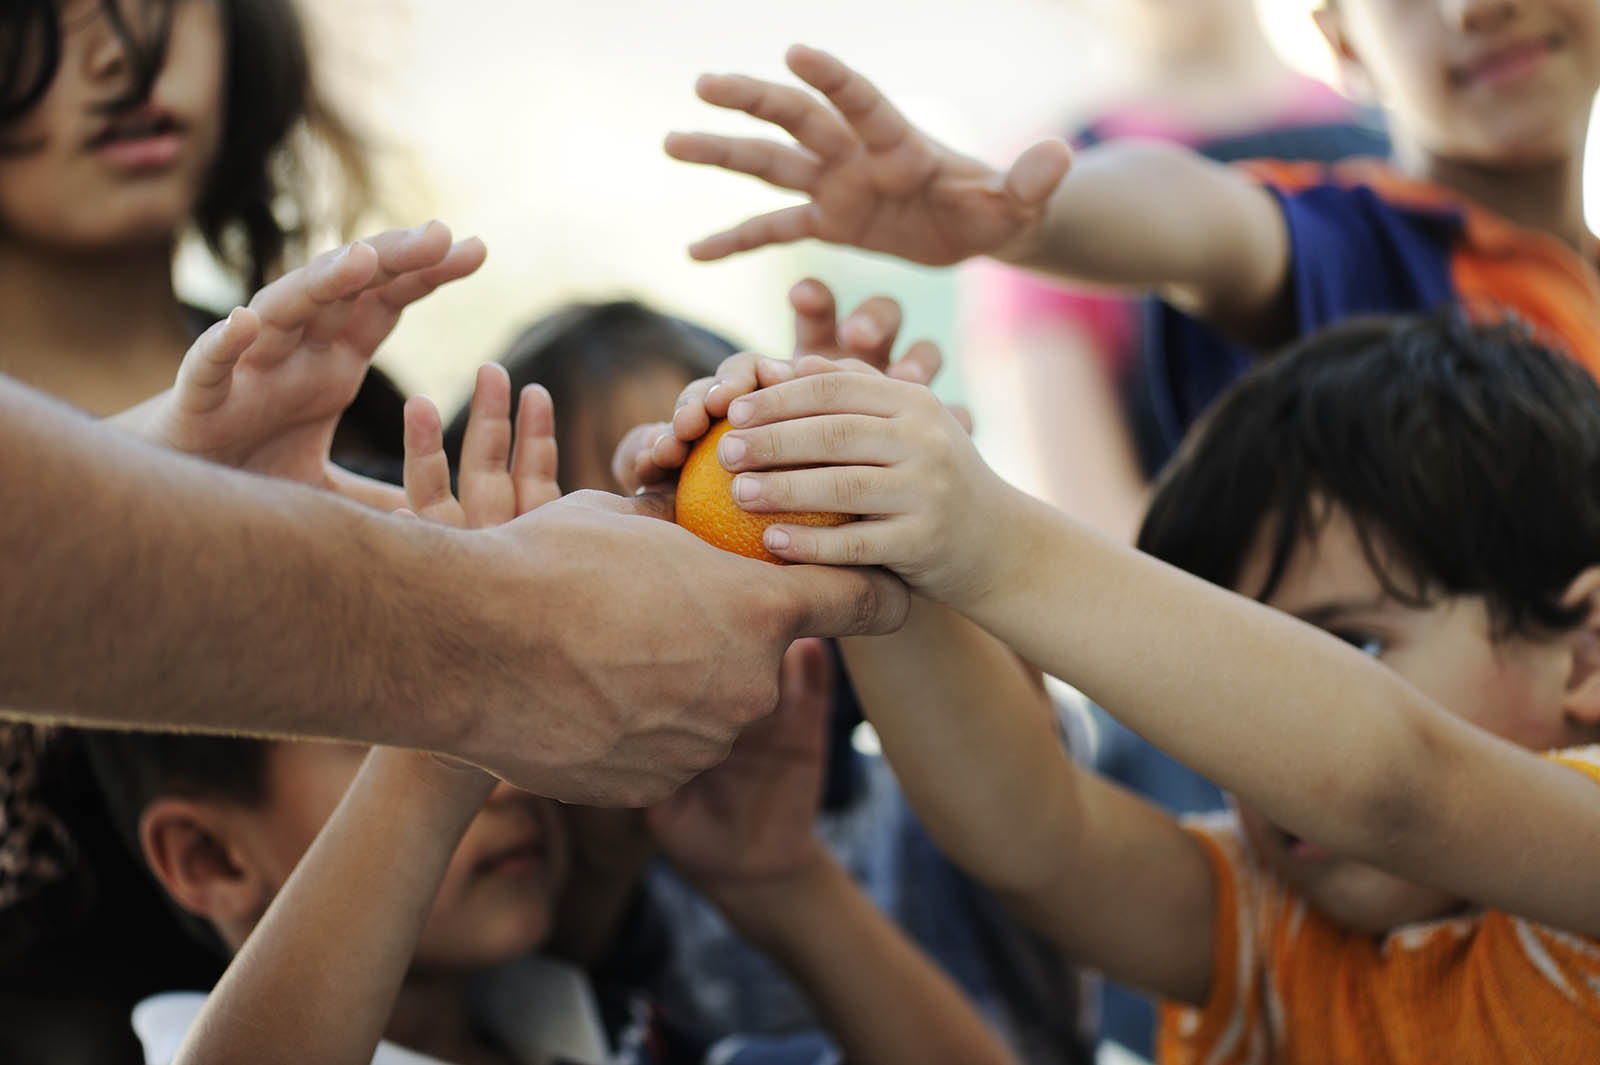 children in a group reaching up for an orange